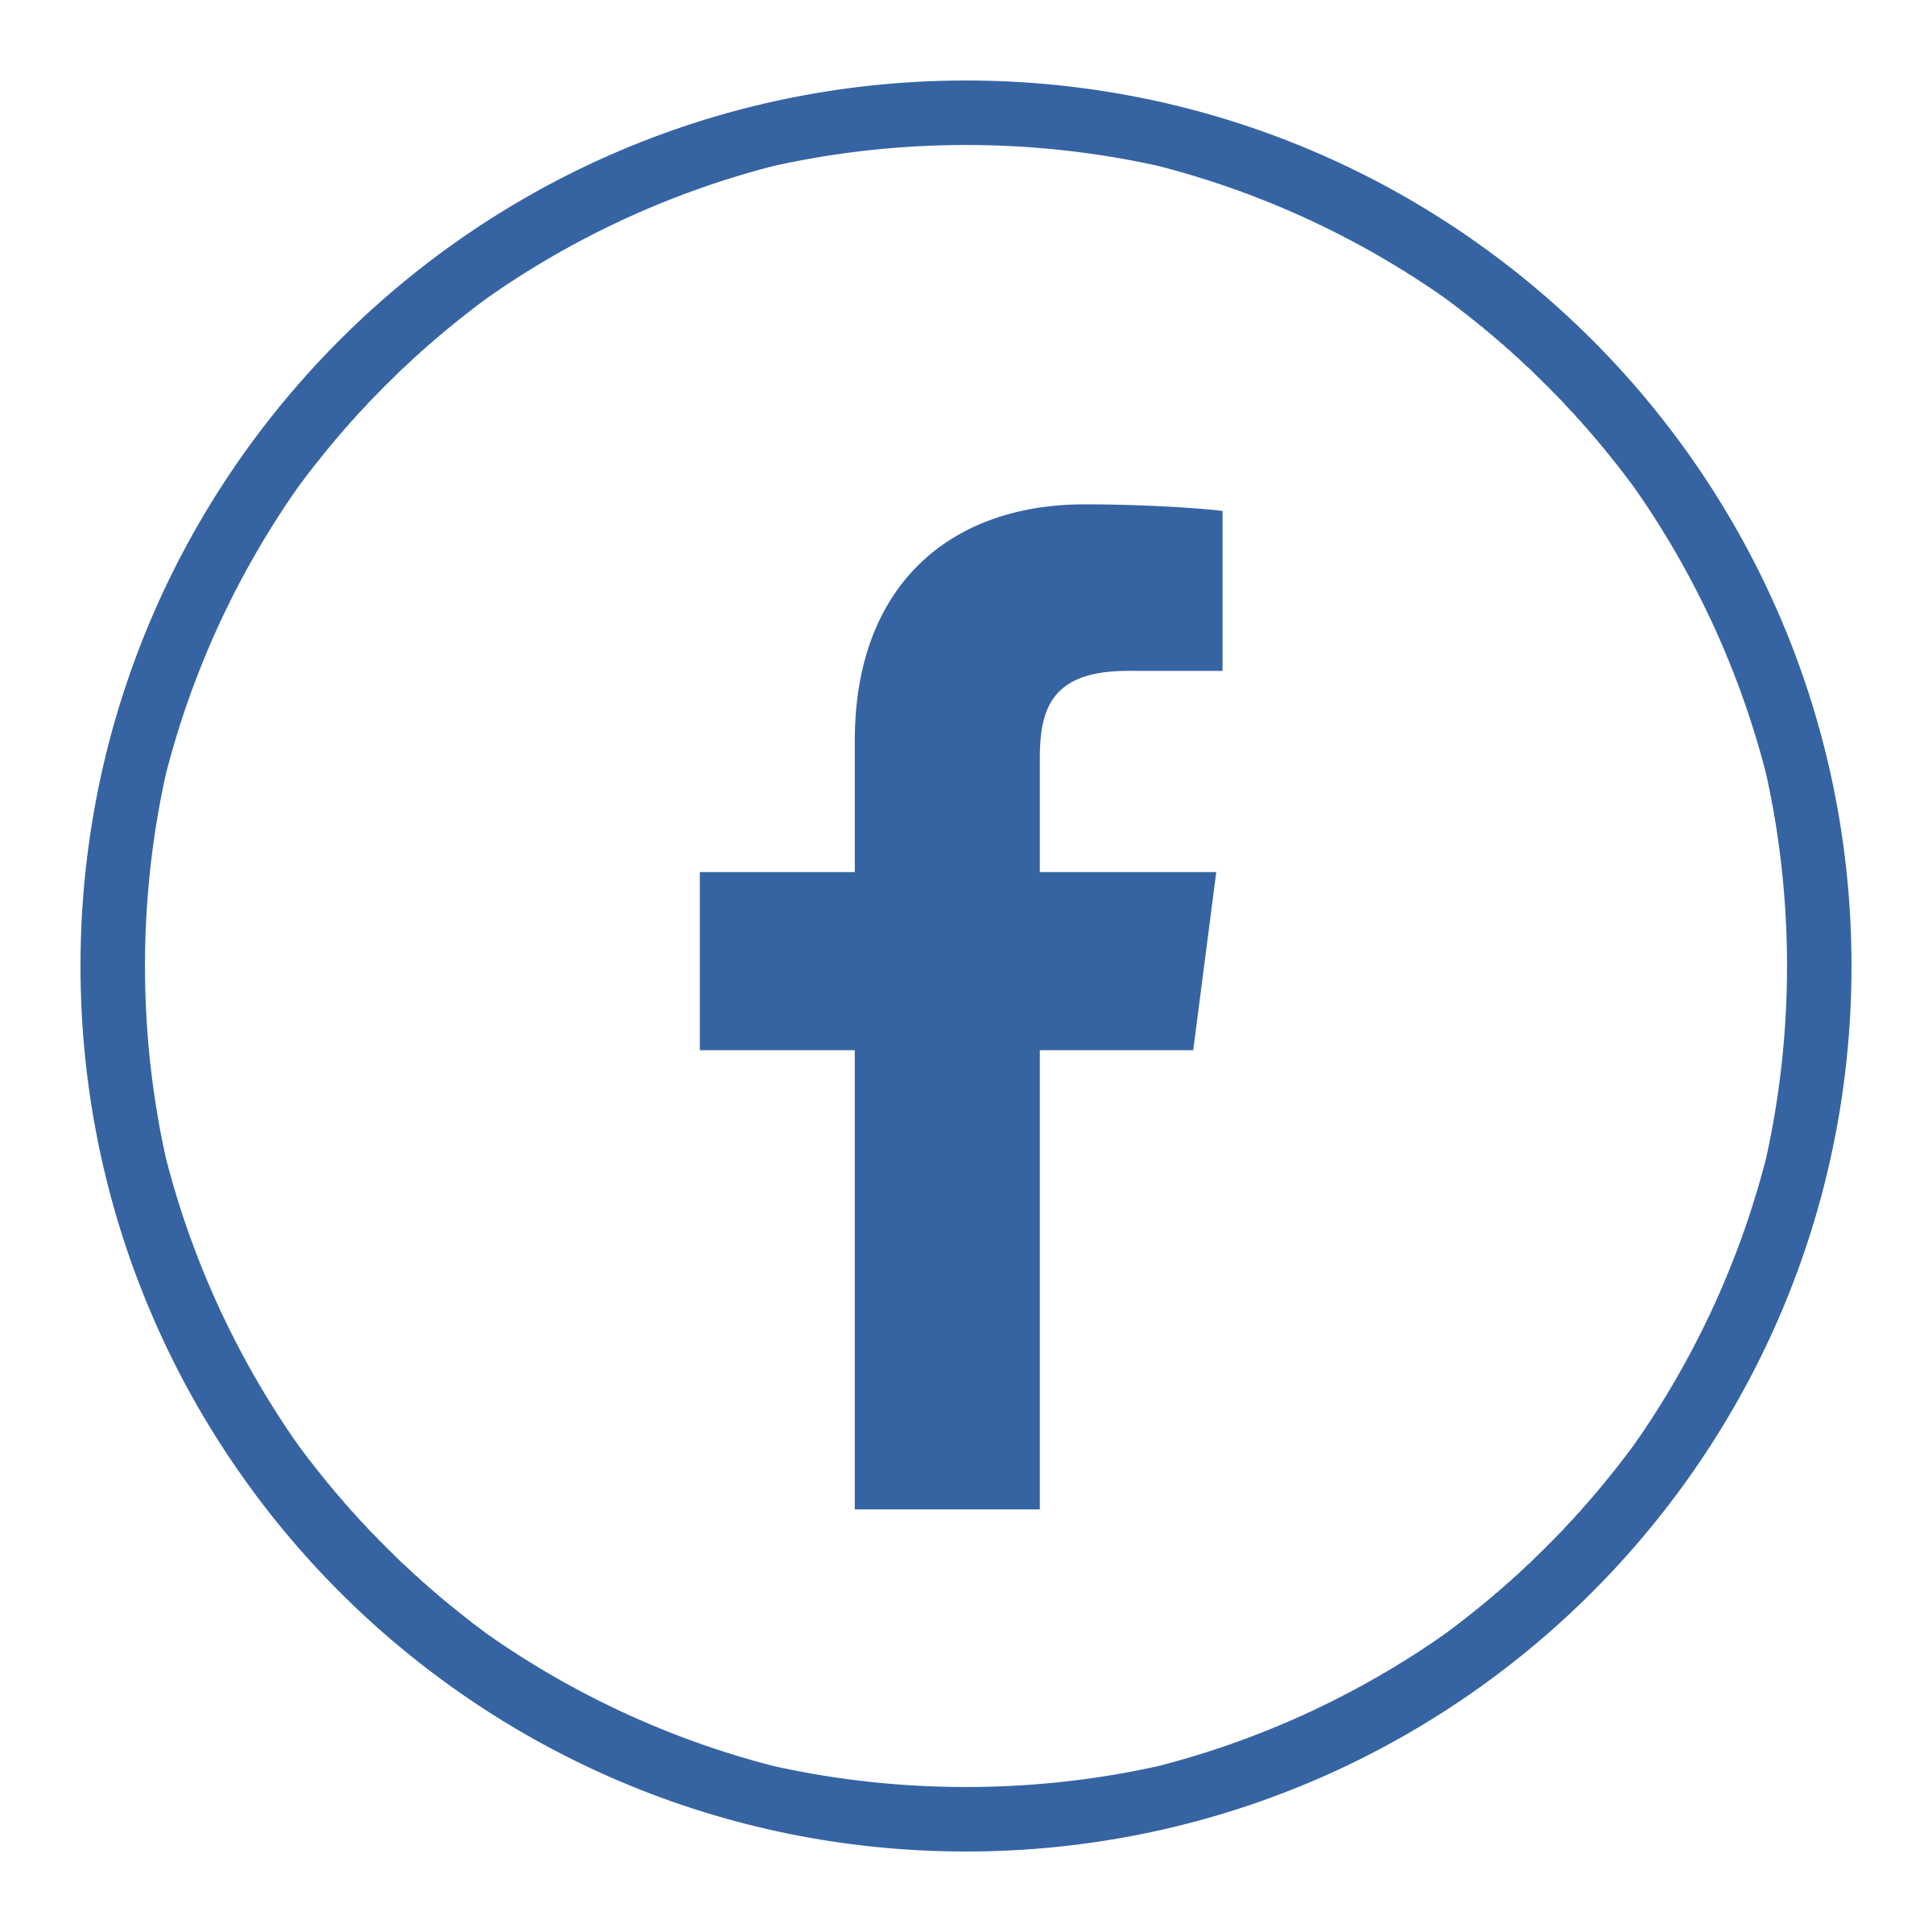 Facebook circle png. Logo pictures free icons